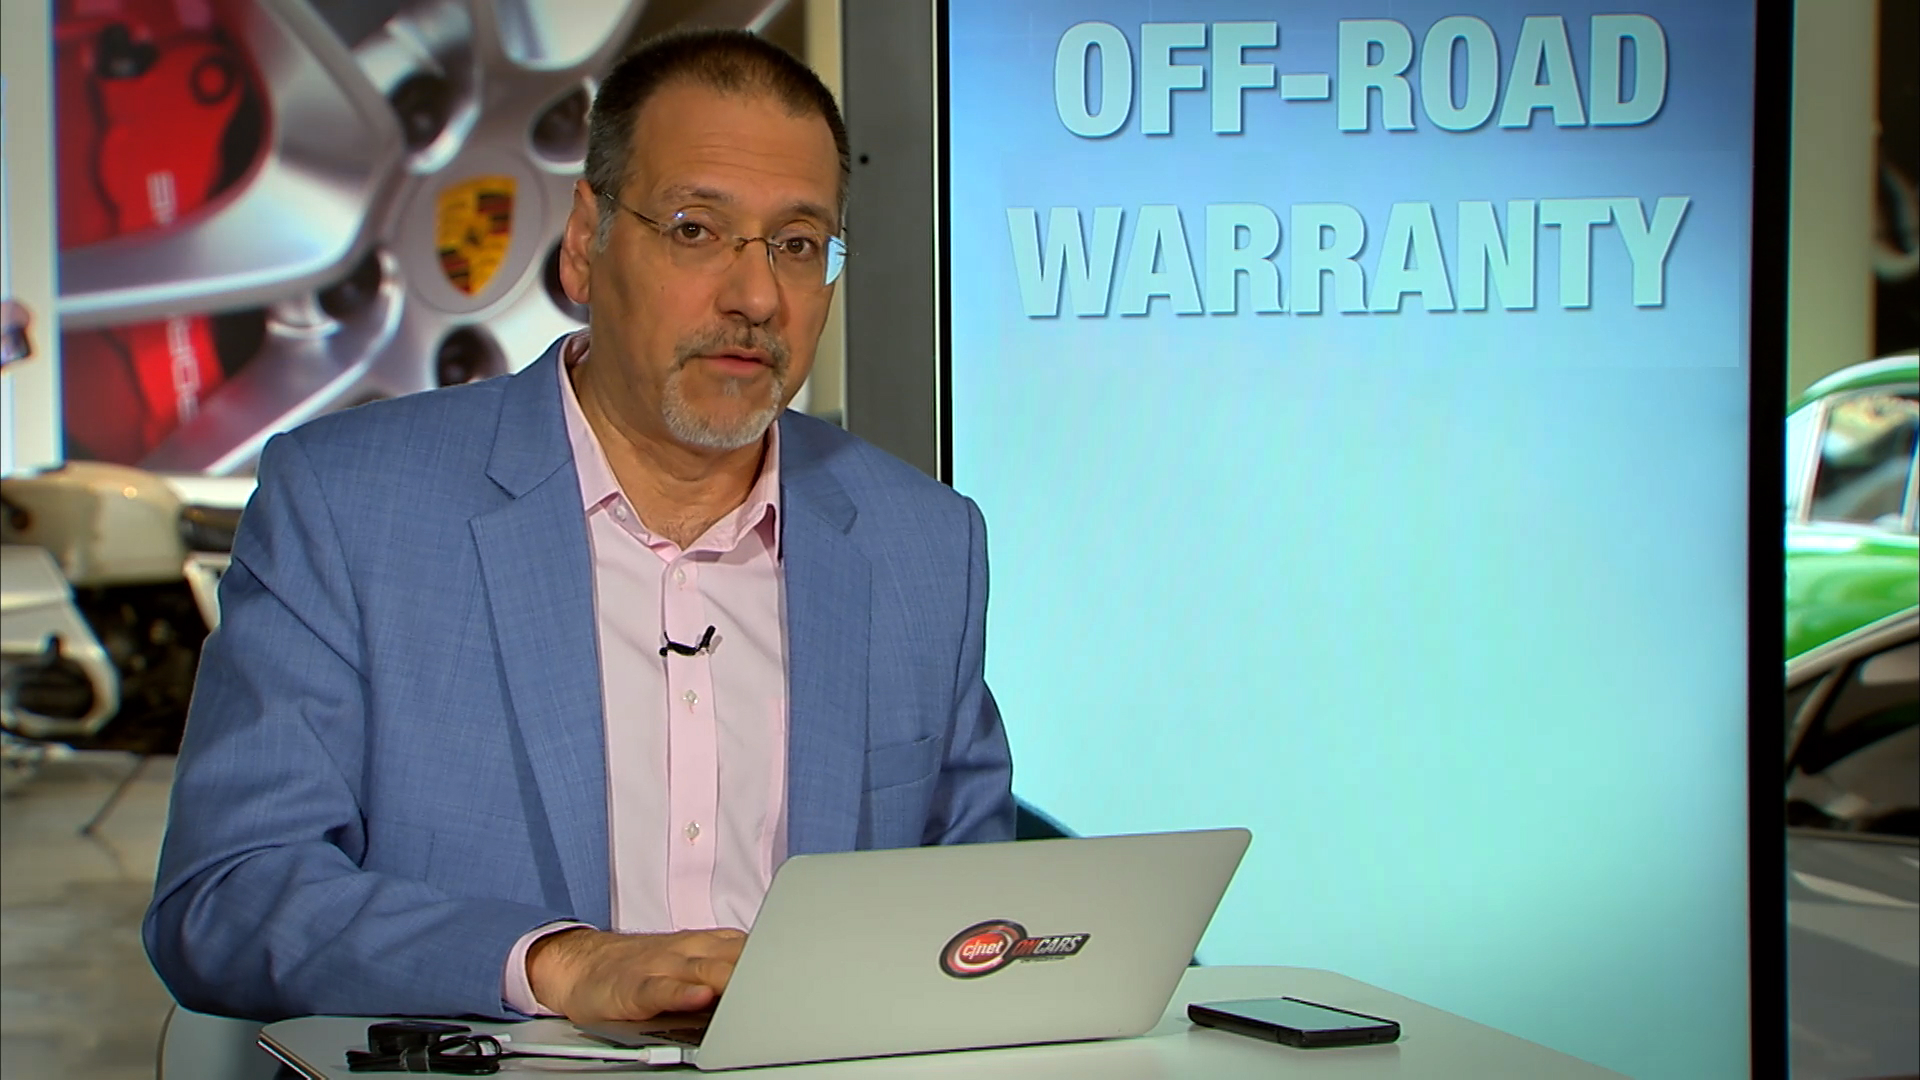 Video: Your emails: Will taking your truck or SUV off-road void the warranty?